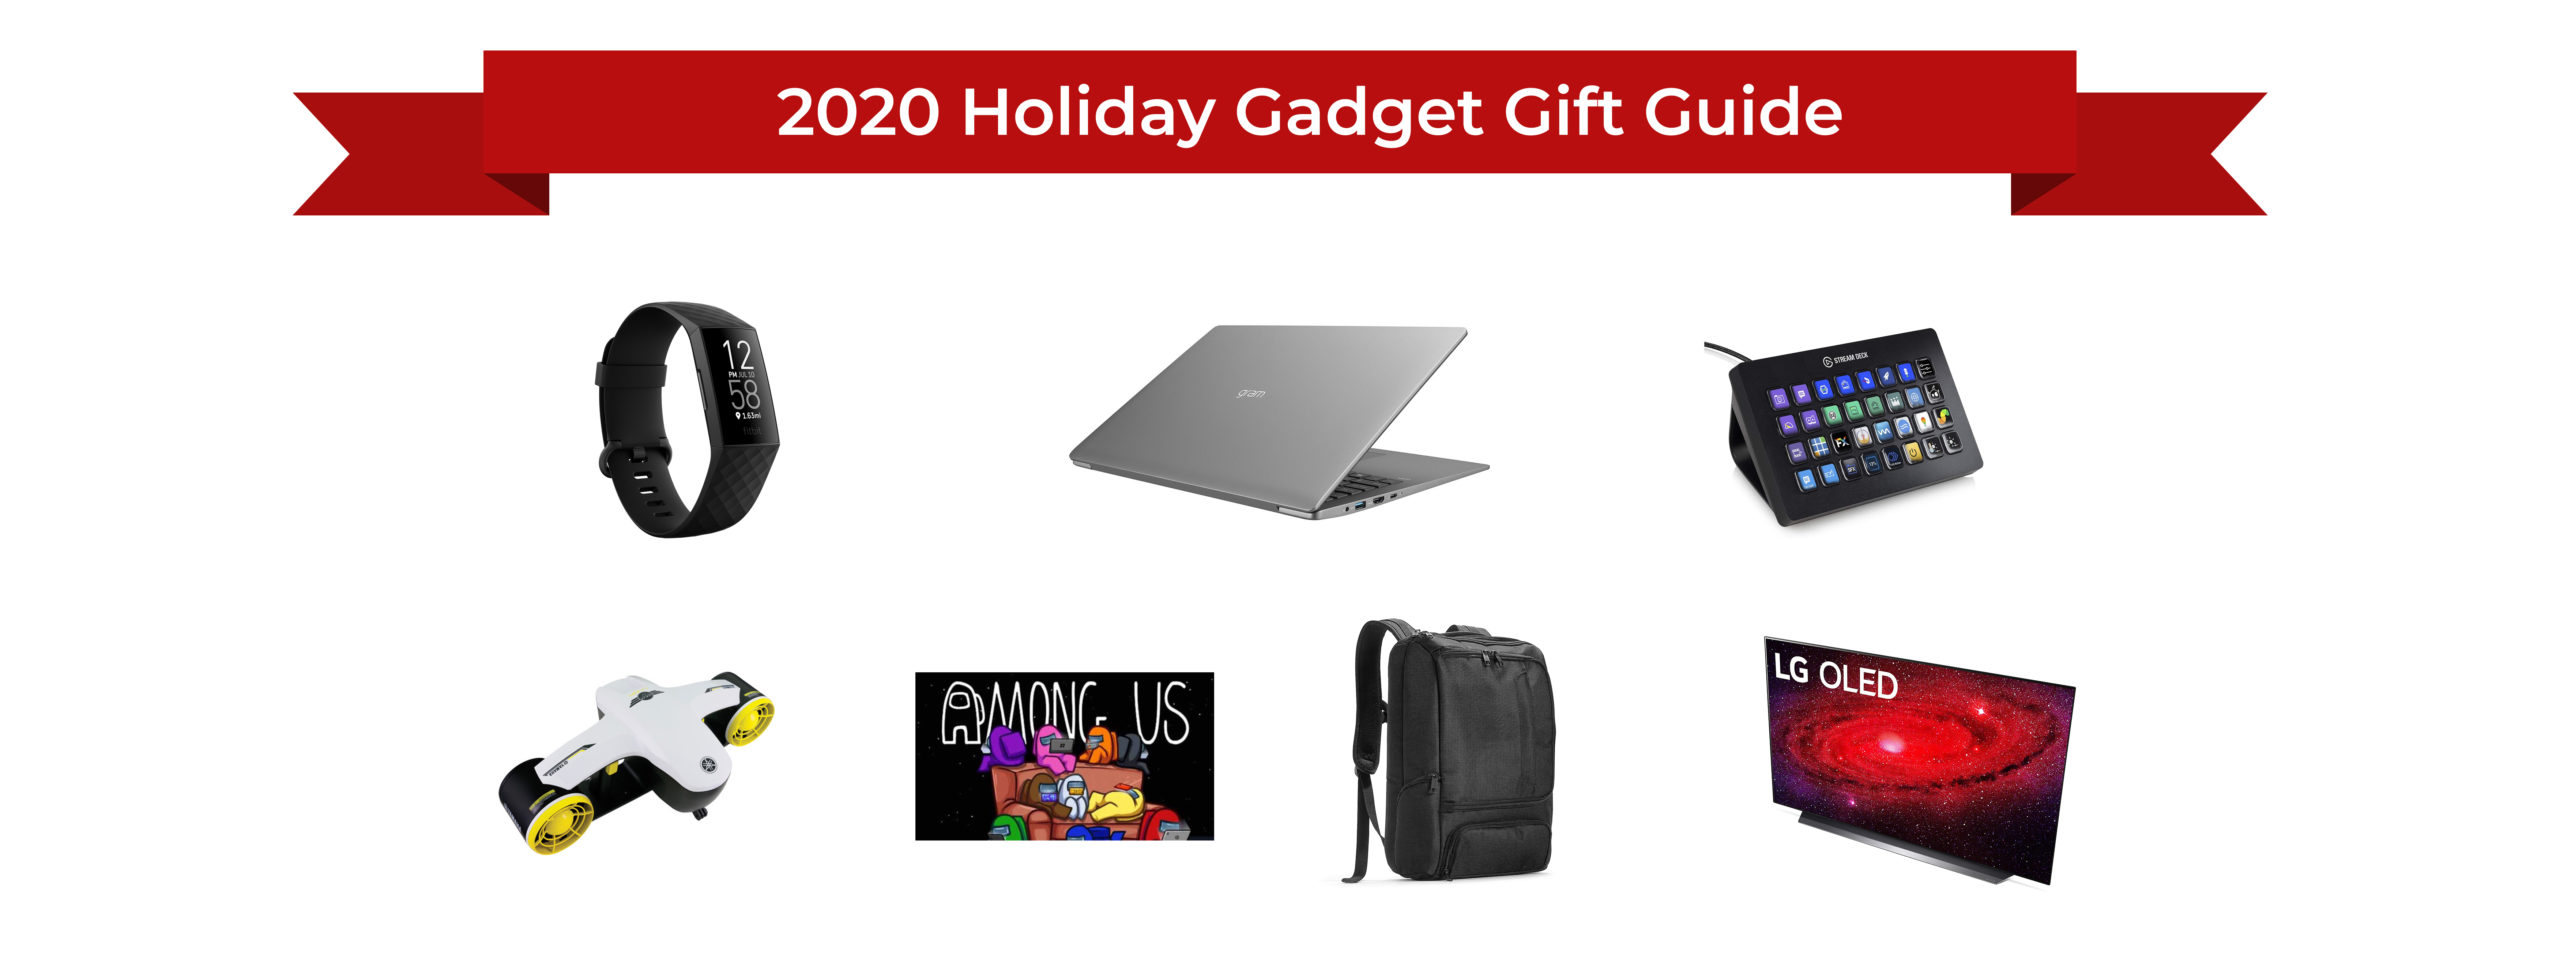 2020 Holiday Gadget Gift Guide